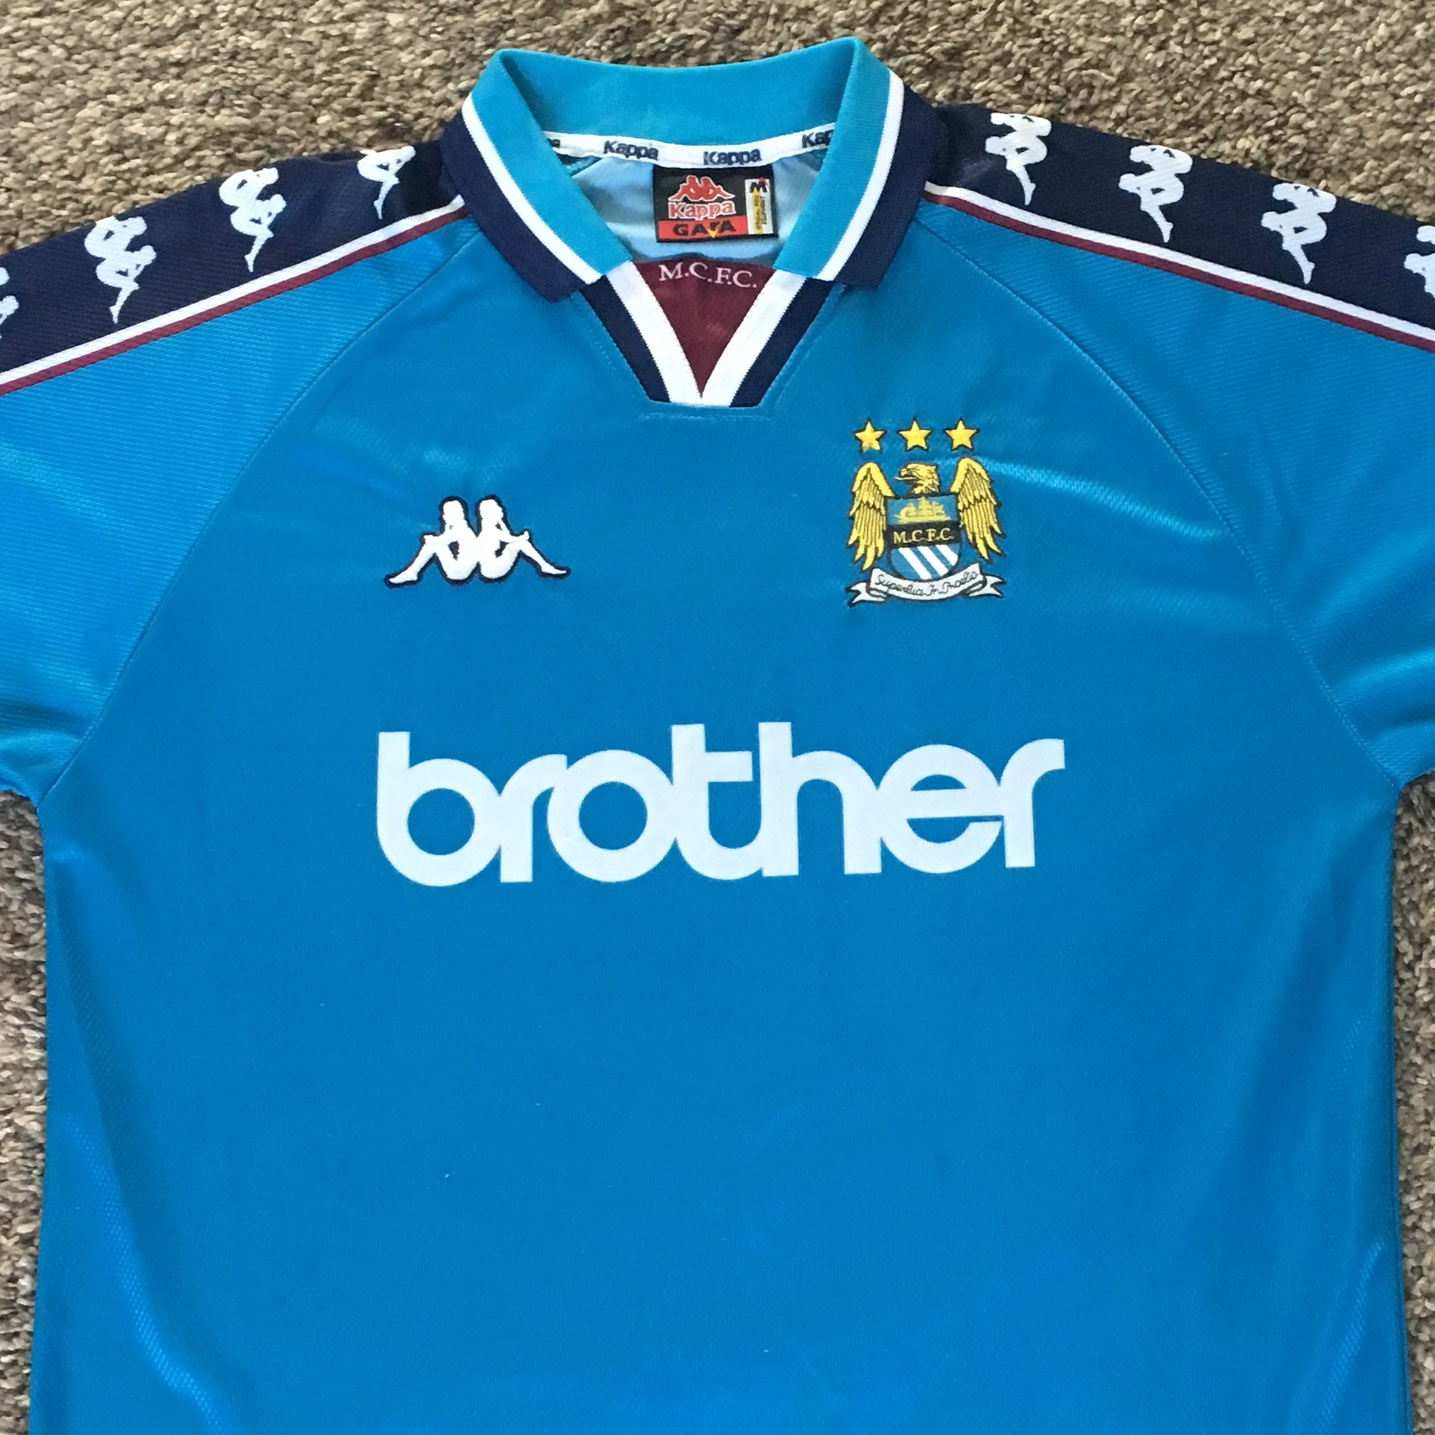 watch d70cd d3a67 Classic retro kappa Manchester City shirt. 1997-99.... - Depop